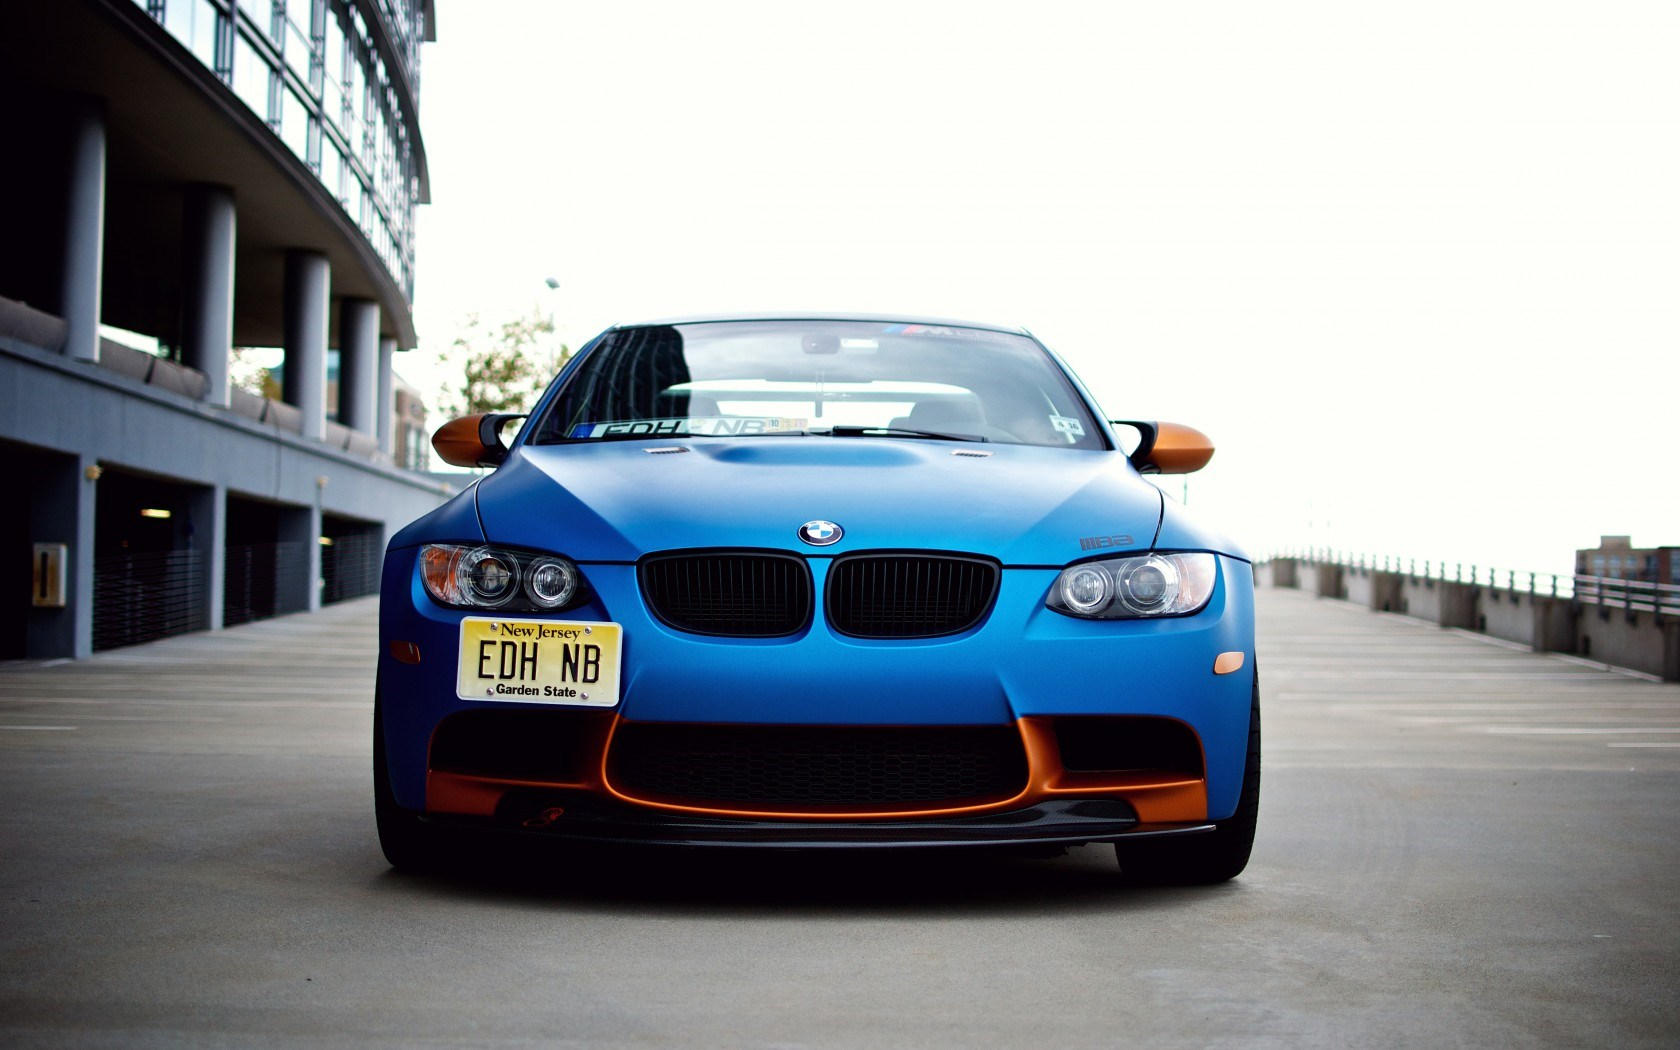 3d Hd Mobile Wallpapers Free Download Bmw E92 Car Tuning Wallpapers Hd Wallpaper